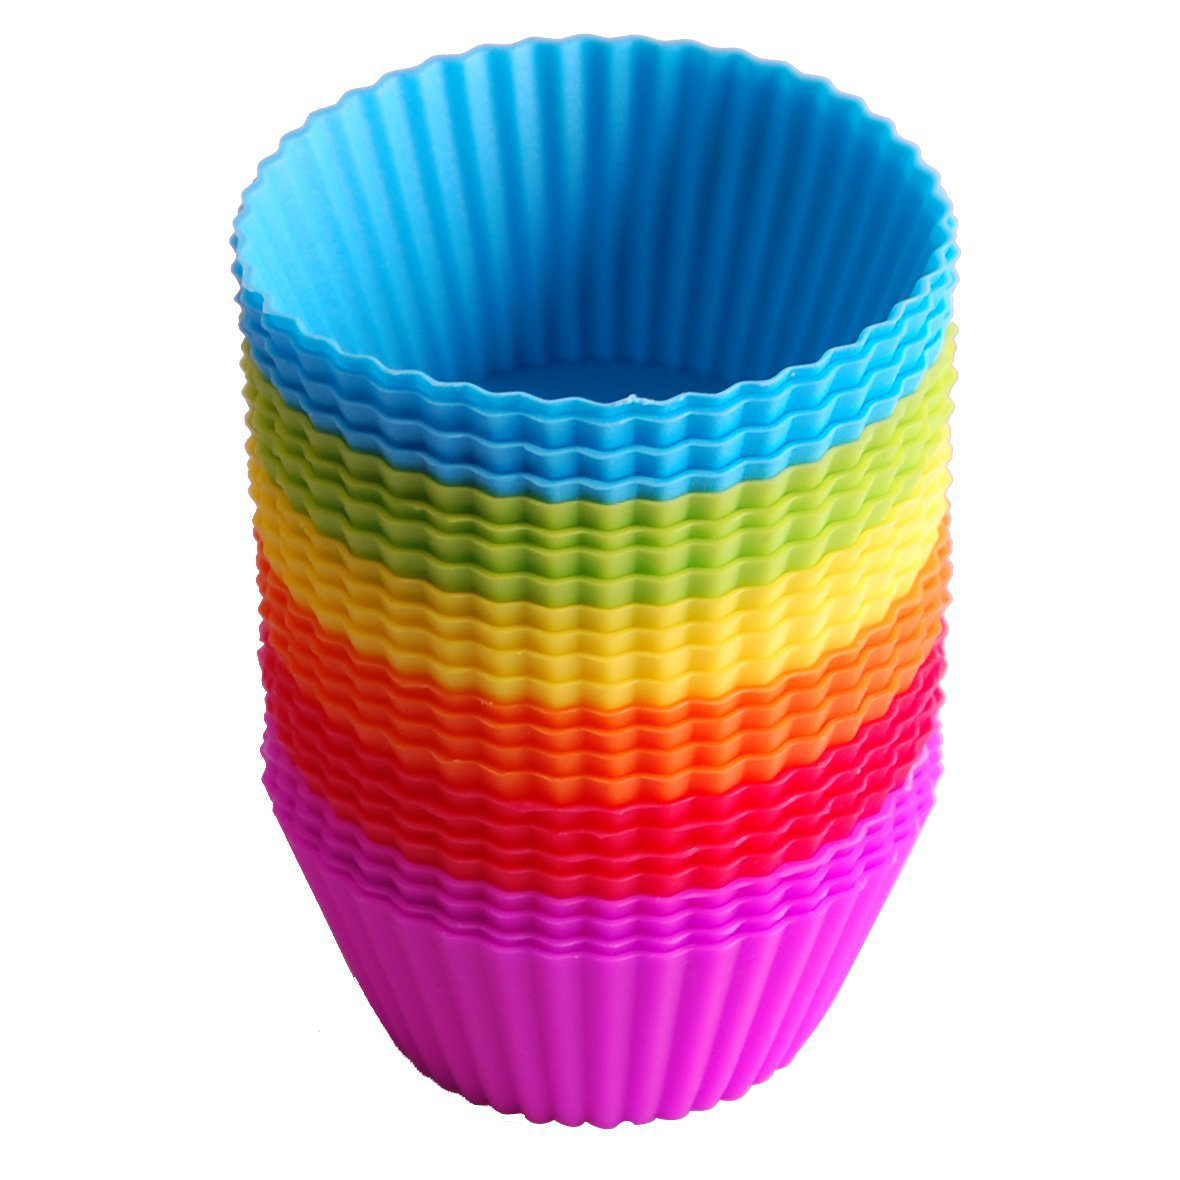 Click here to buy 24-Pack Reusable Silicone Baking Cups Cupcake Liners Muffin Cups Cake Molds.